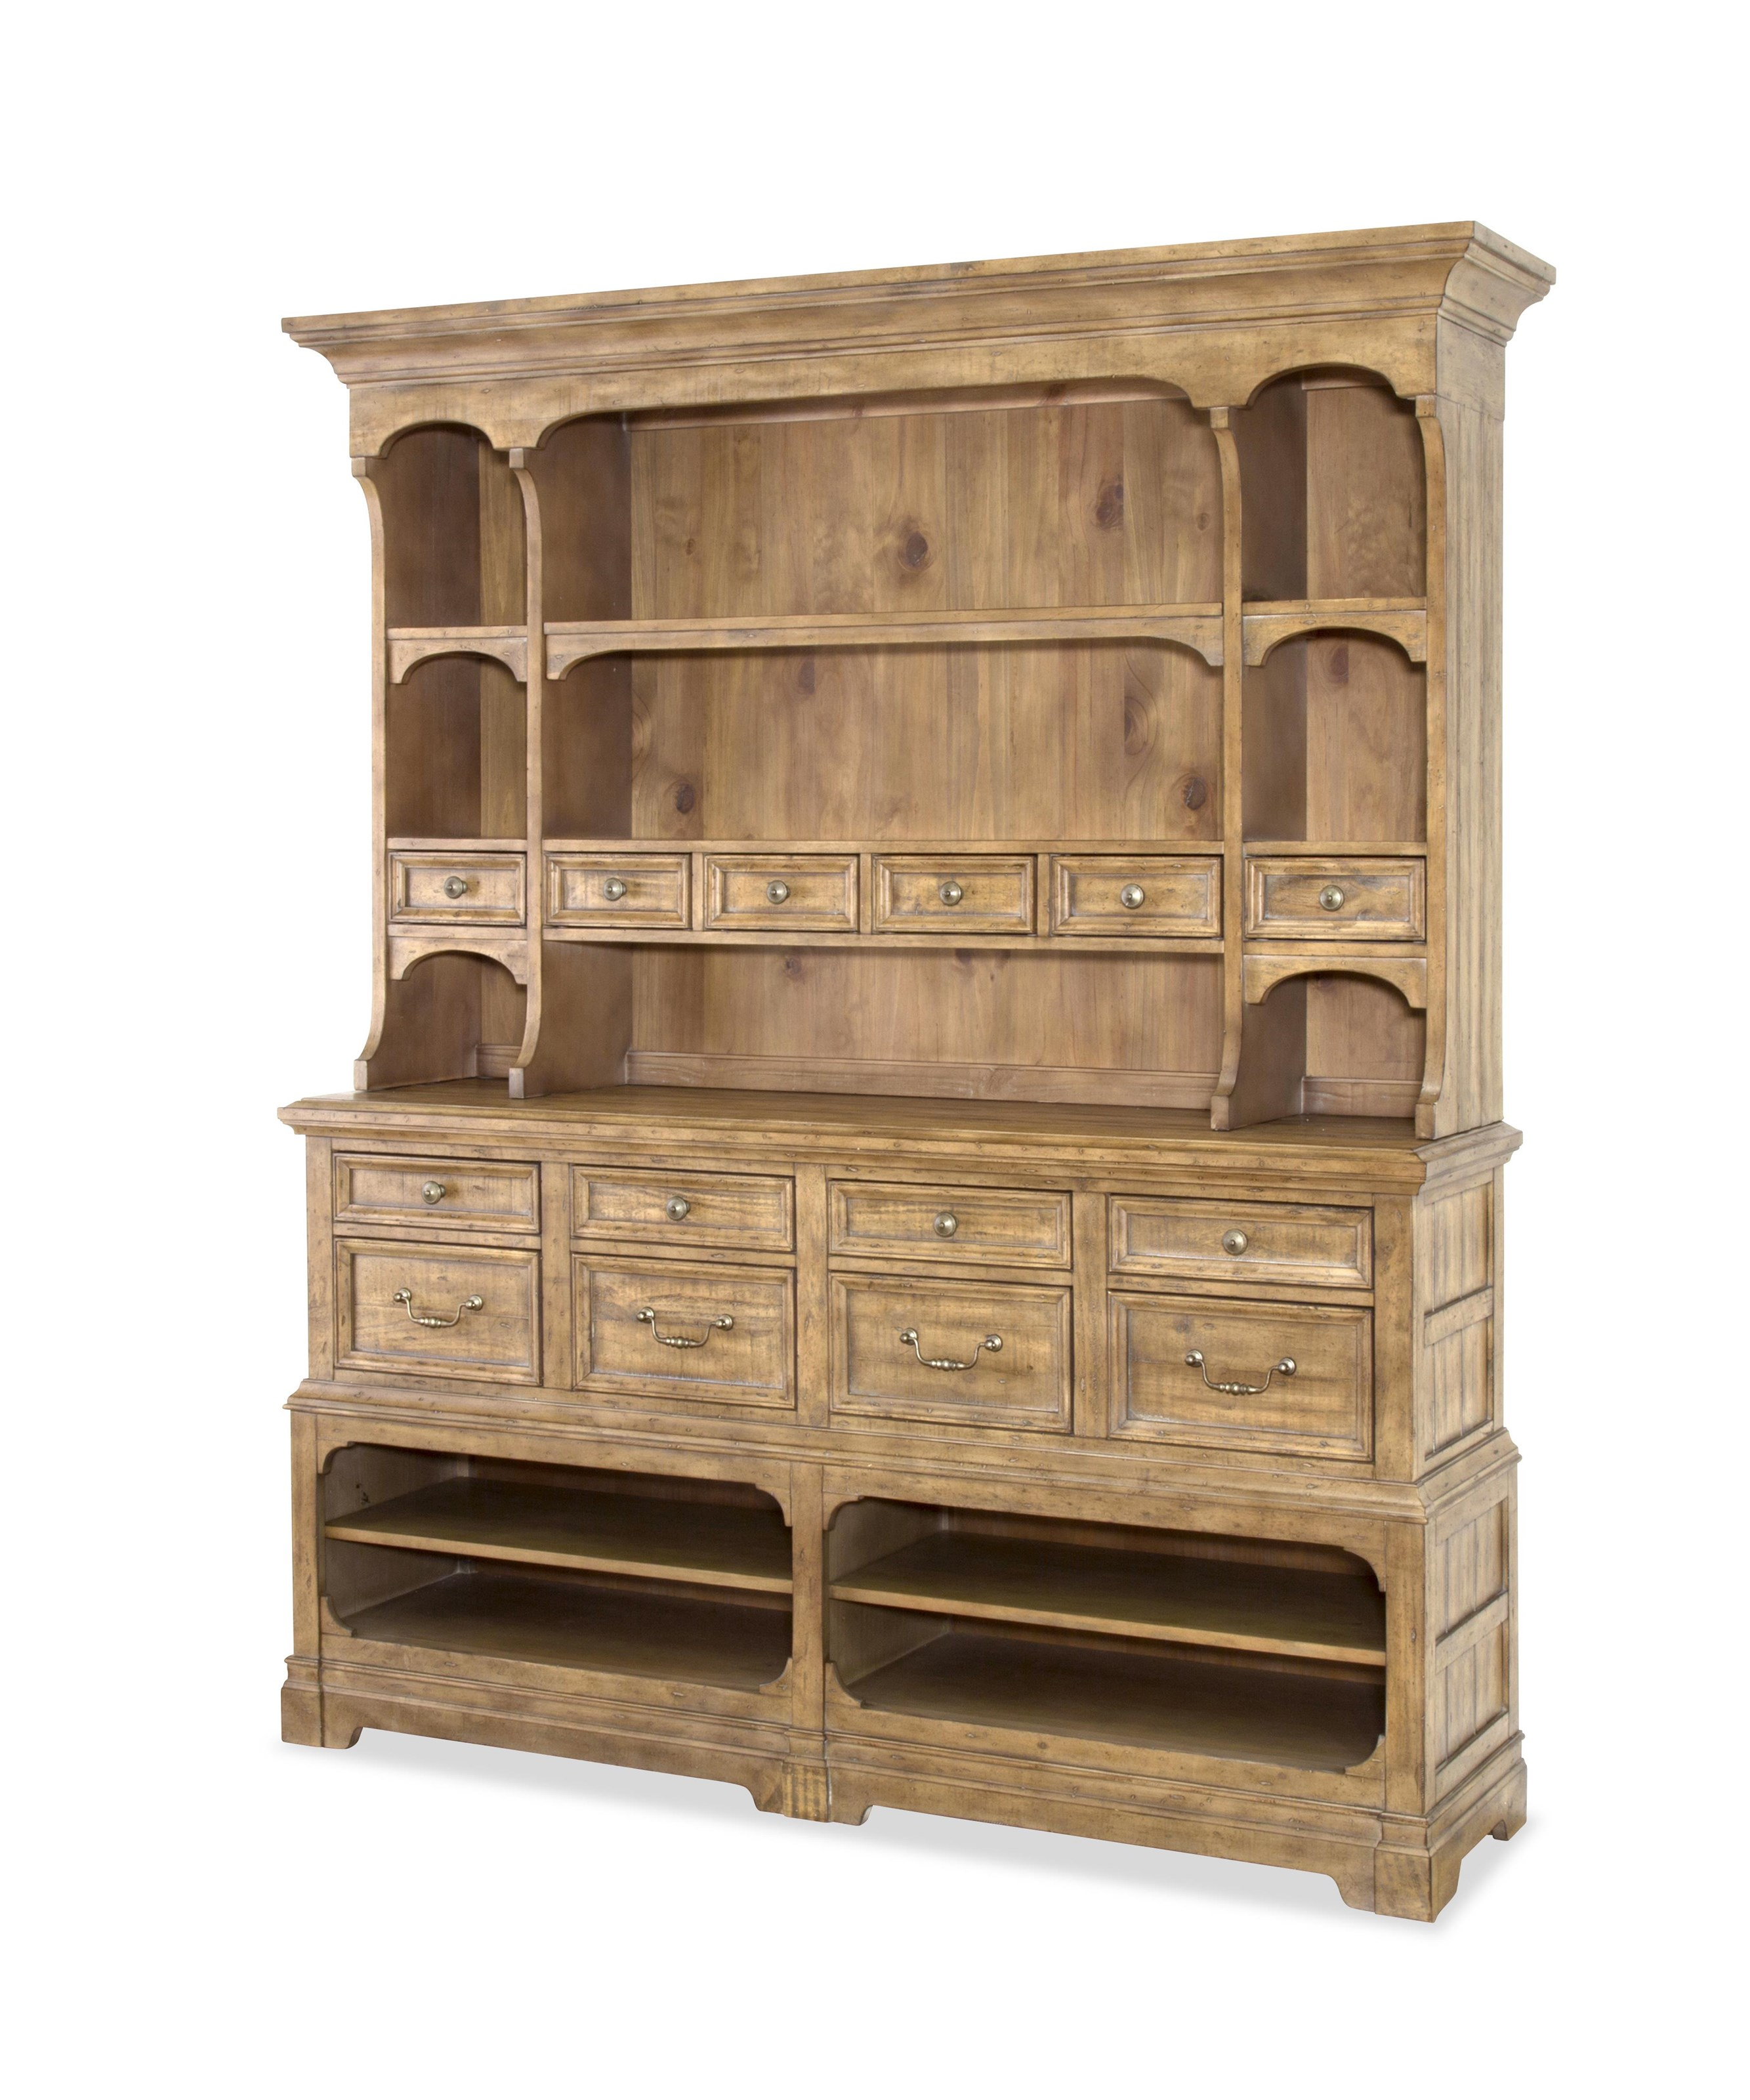 Thorndale Thorndale Sideboard with Hutch by Magnussen Home at Morris Home